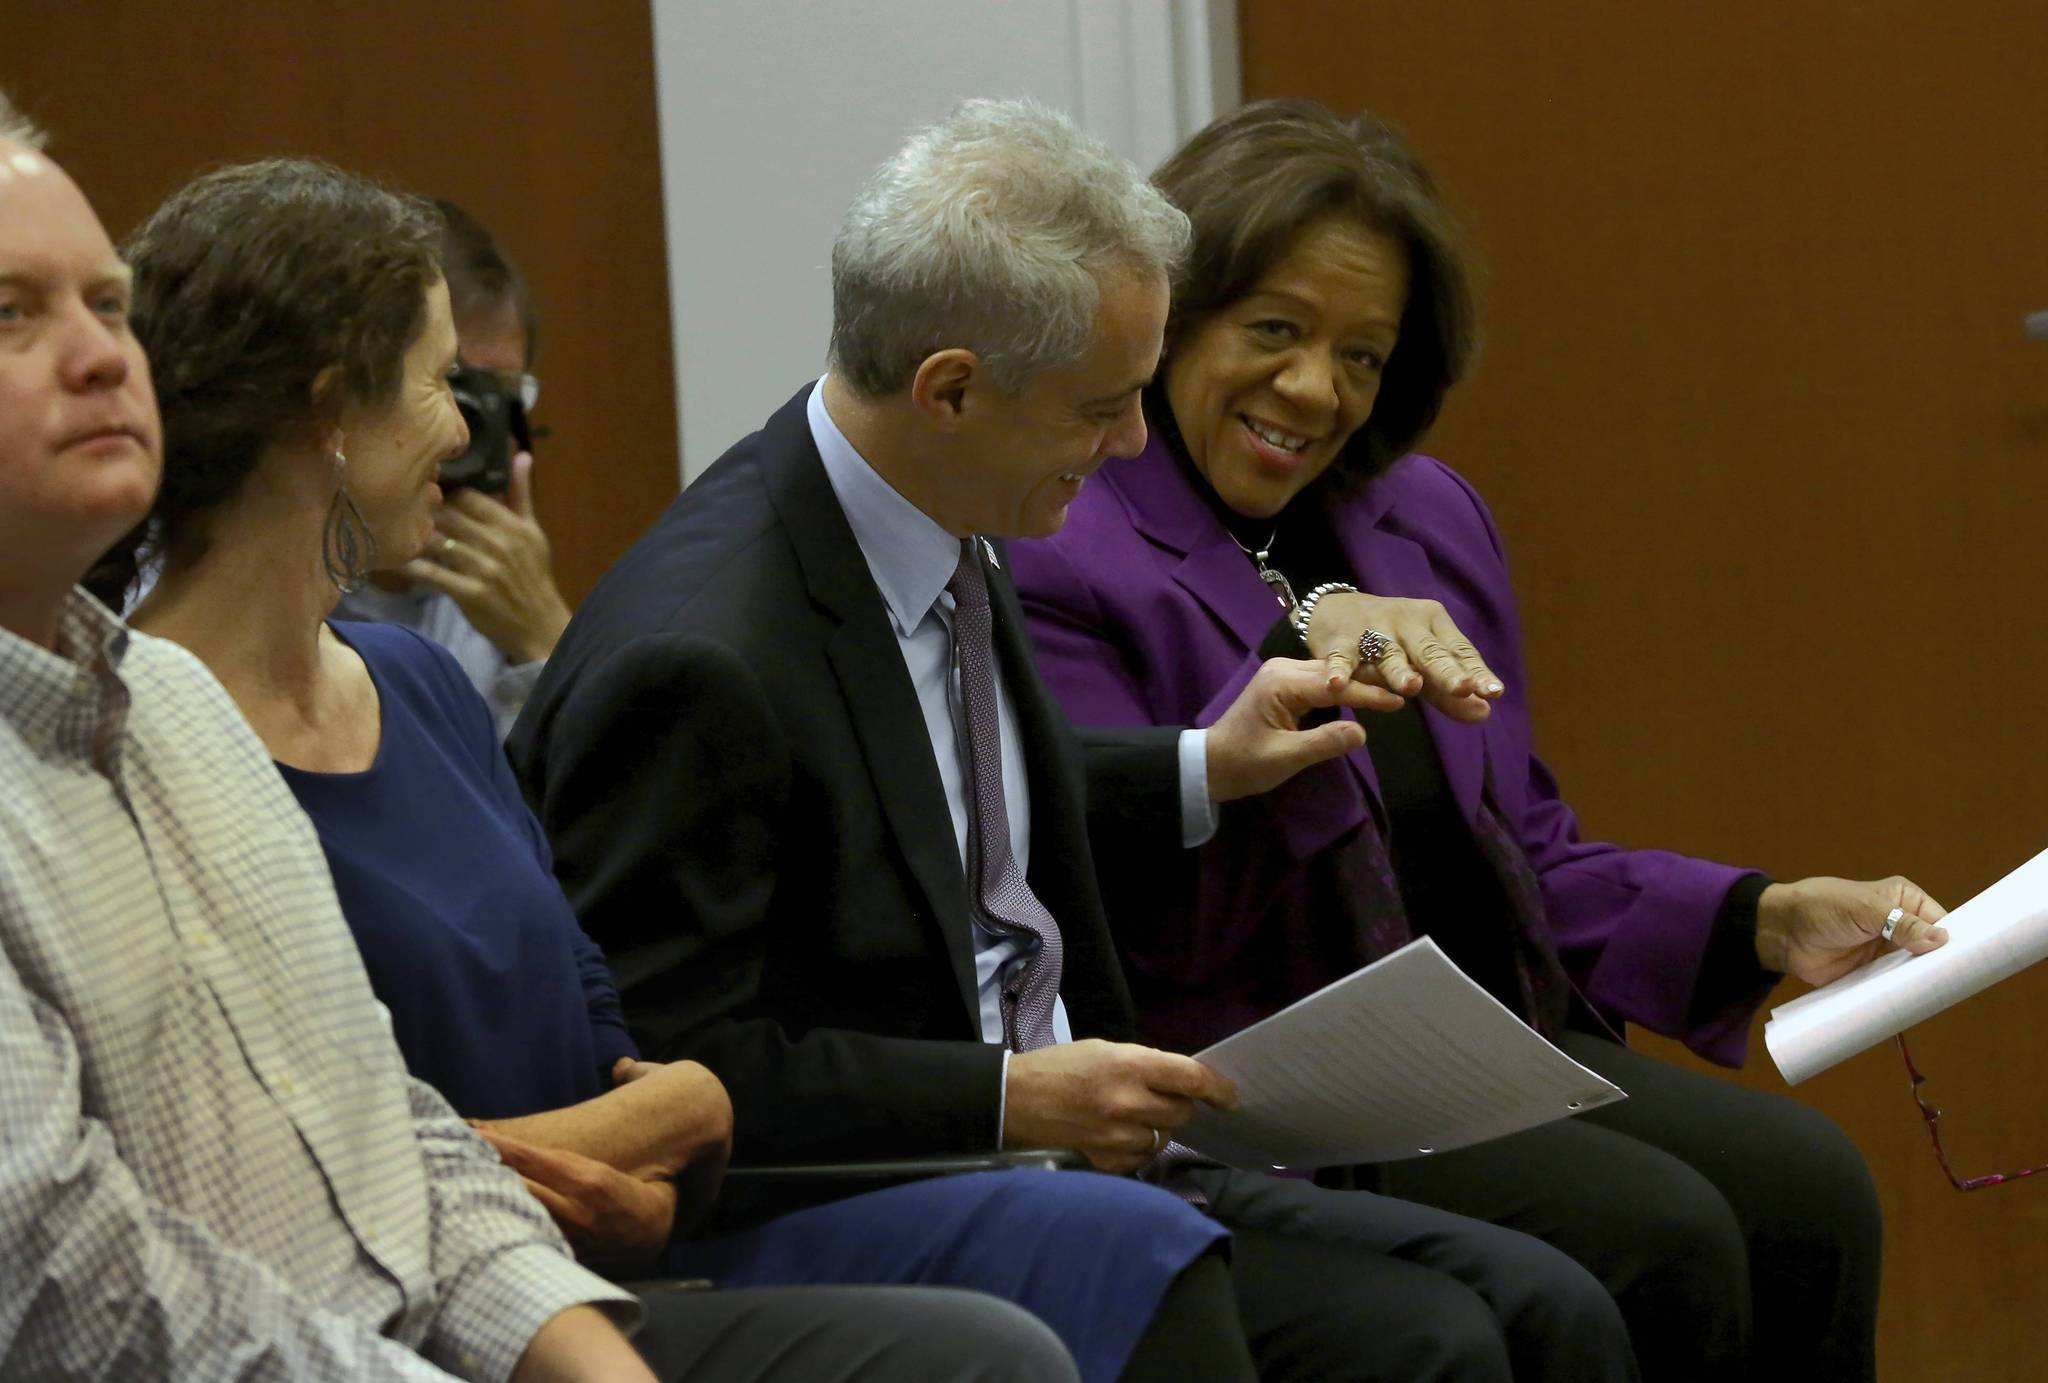 Mayor Rahm Emanuel and Chicago Public Schools Superintendent Barbara Byrd-Bennett are all smiles as they attend a press conference in Chicago with the University of Chicago Consortium on Chicago School Research about CPS students being on track to 82 percent graduation rate.